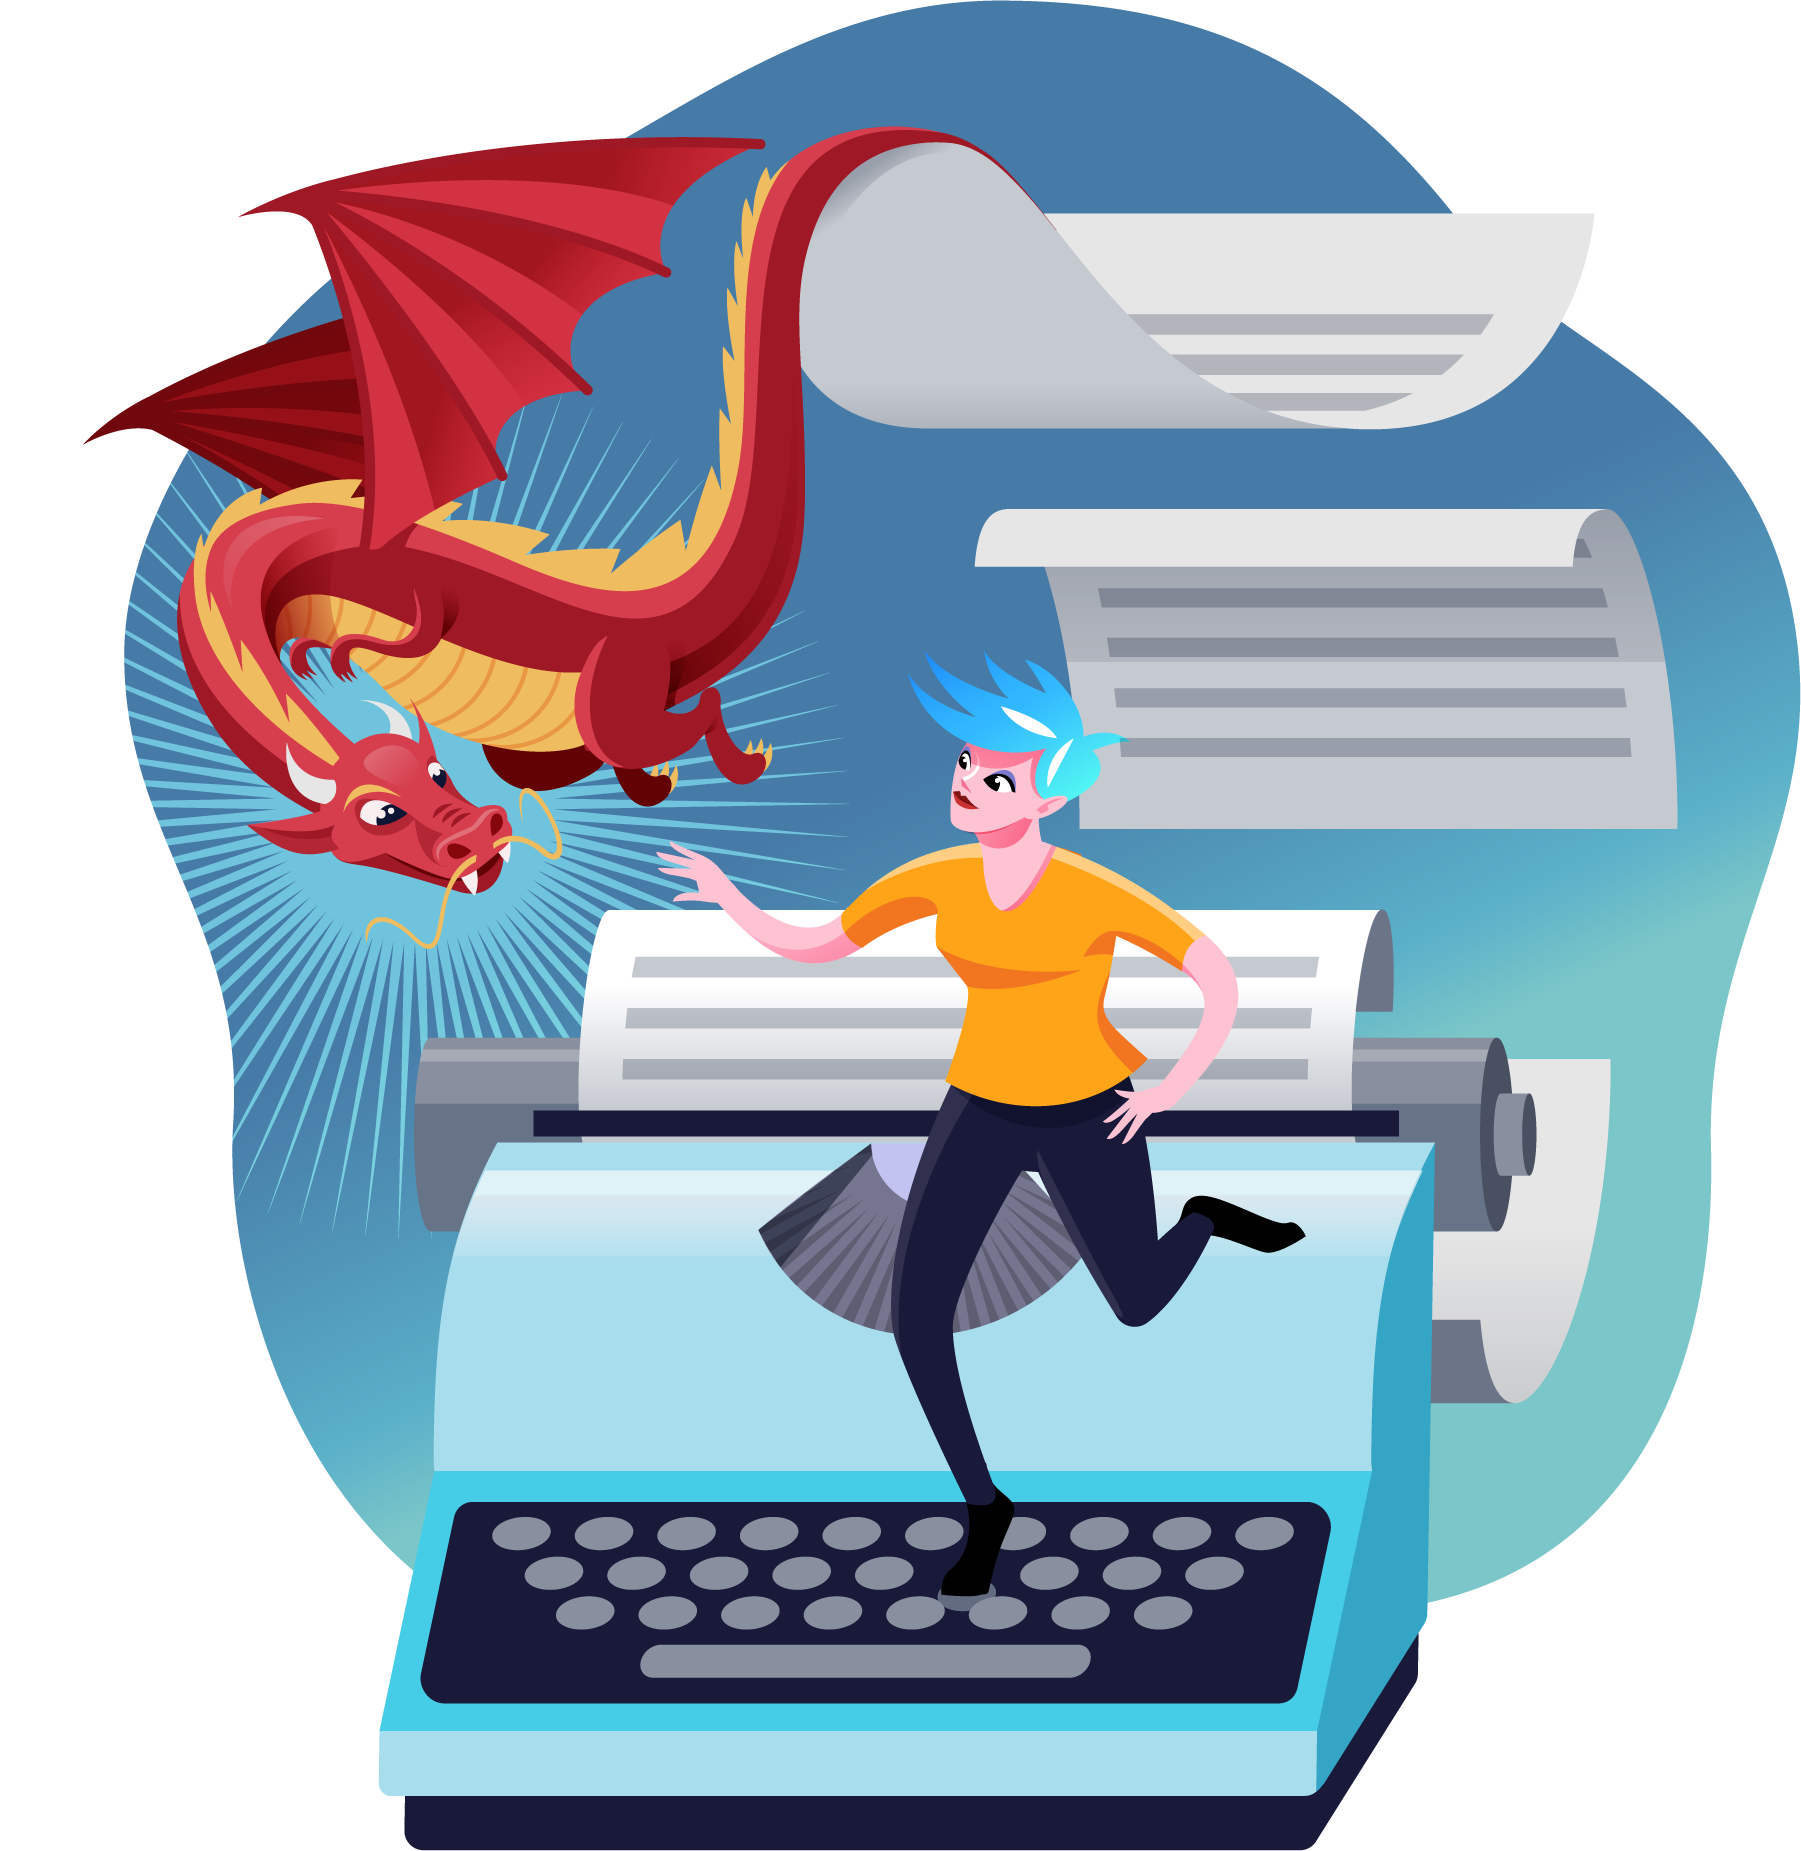 Game Writing illustration - articy avatar standing on a typewriter key looking at red dragon coming to life from story